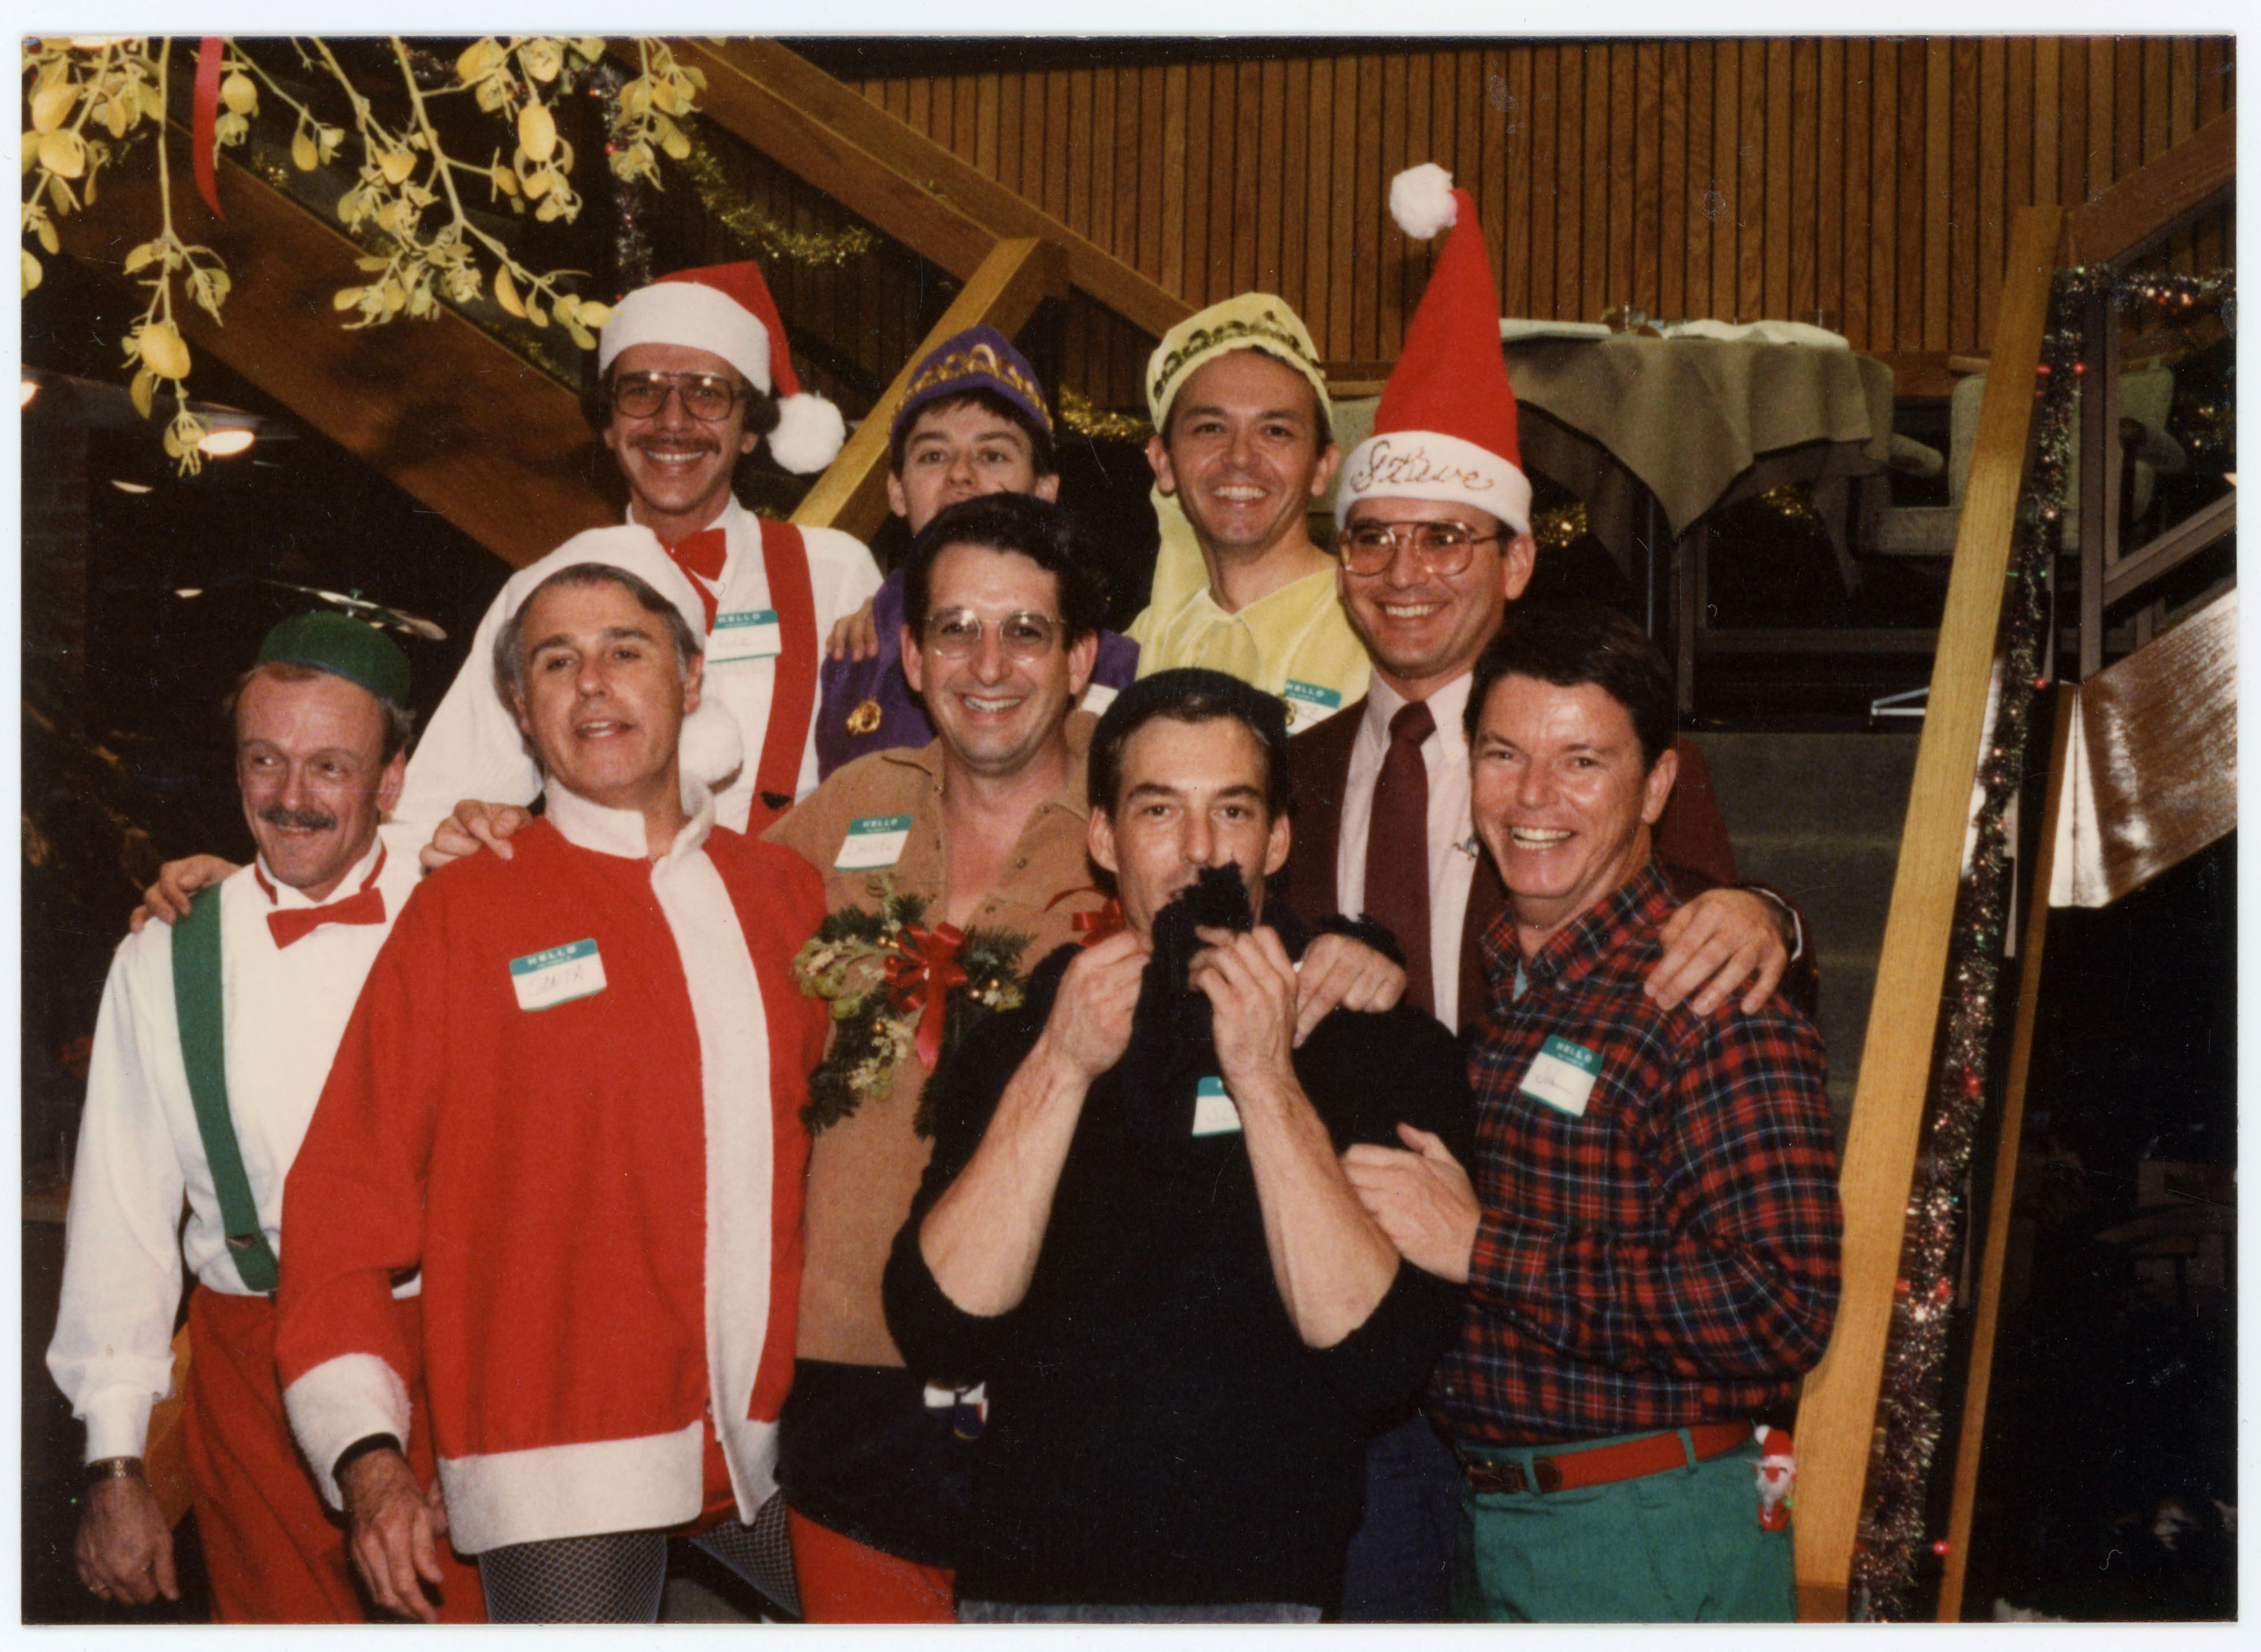 Group posing in Christmas outfits; 1985